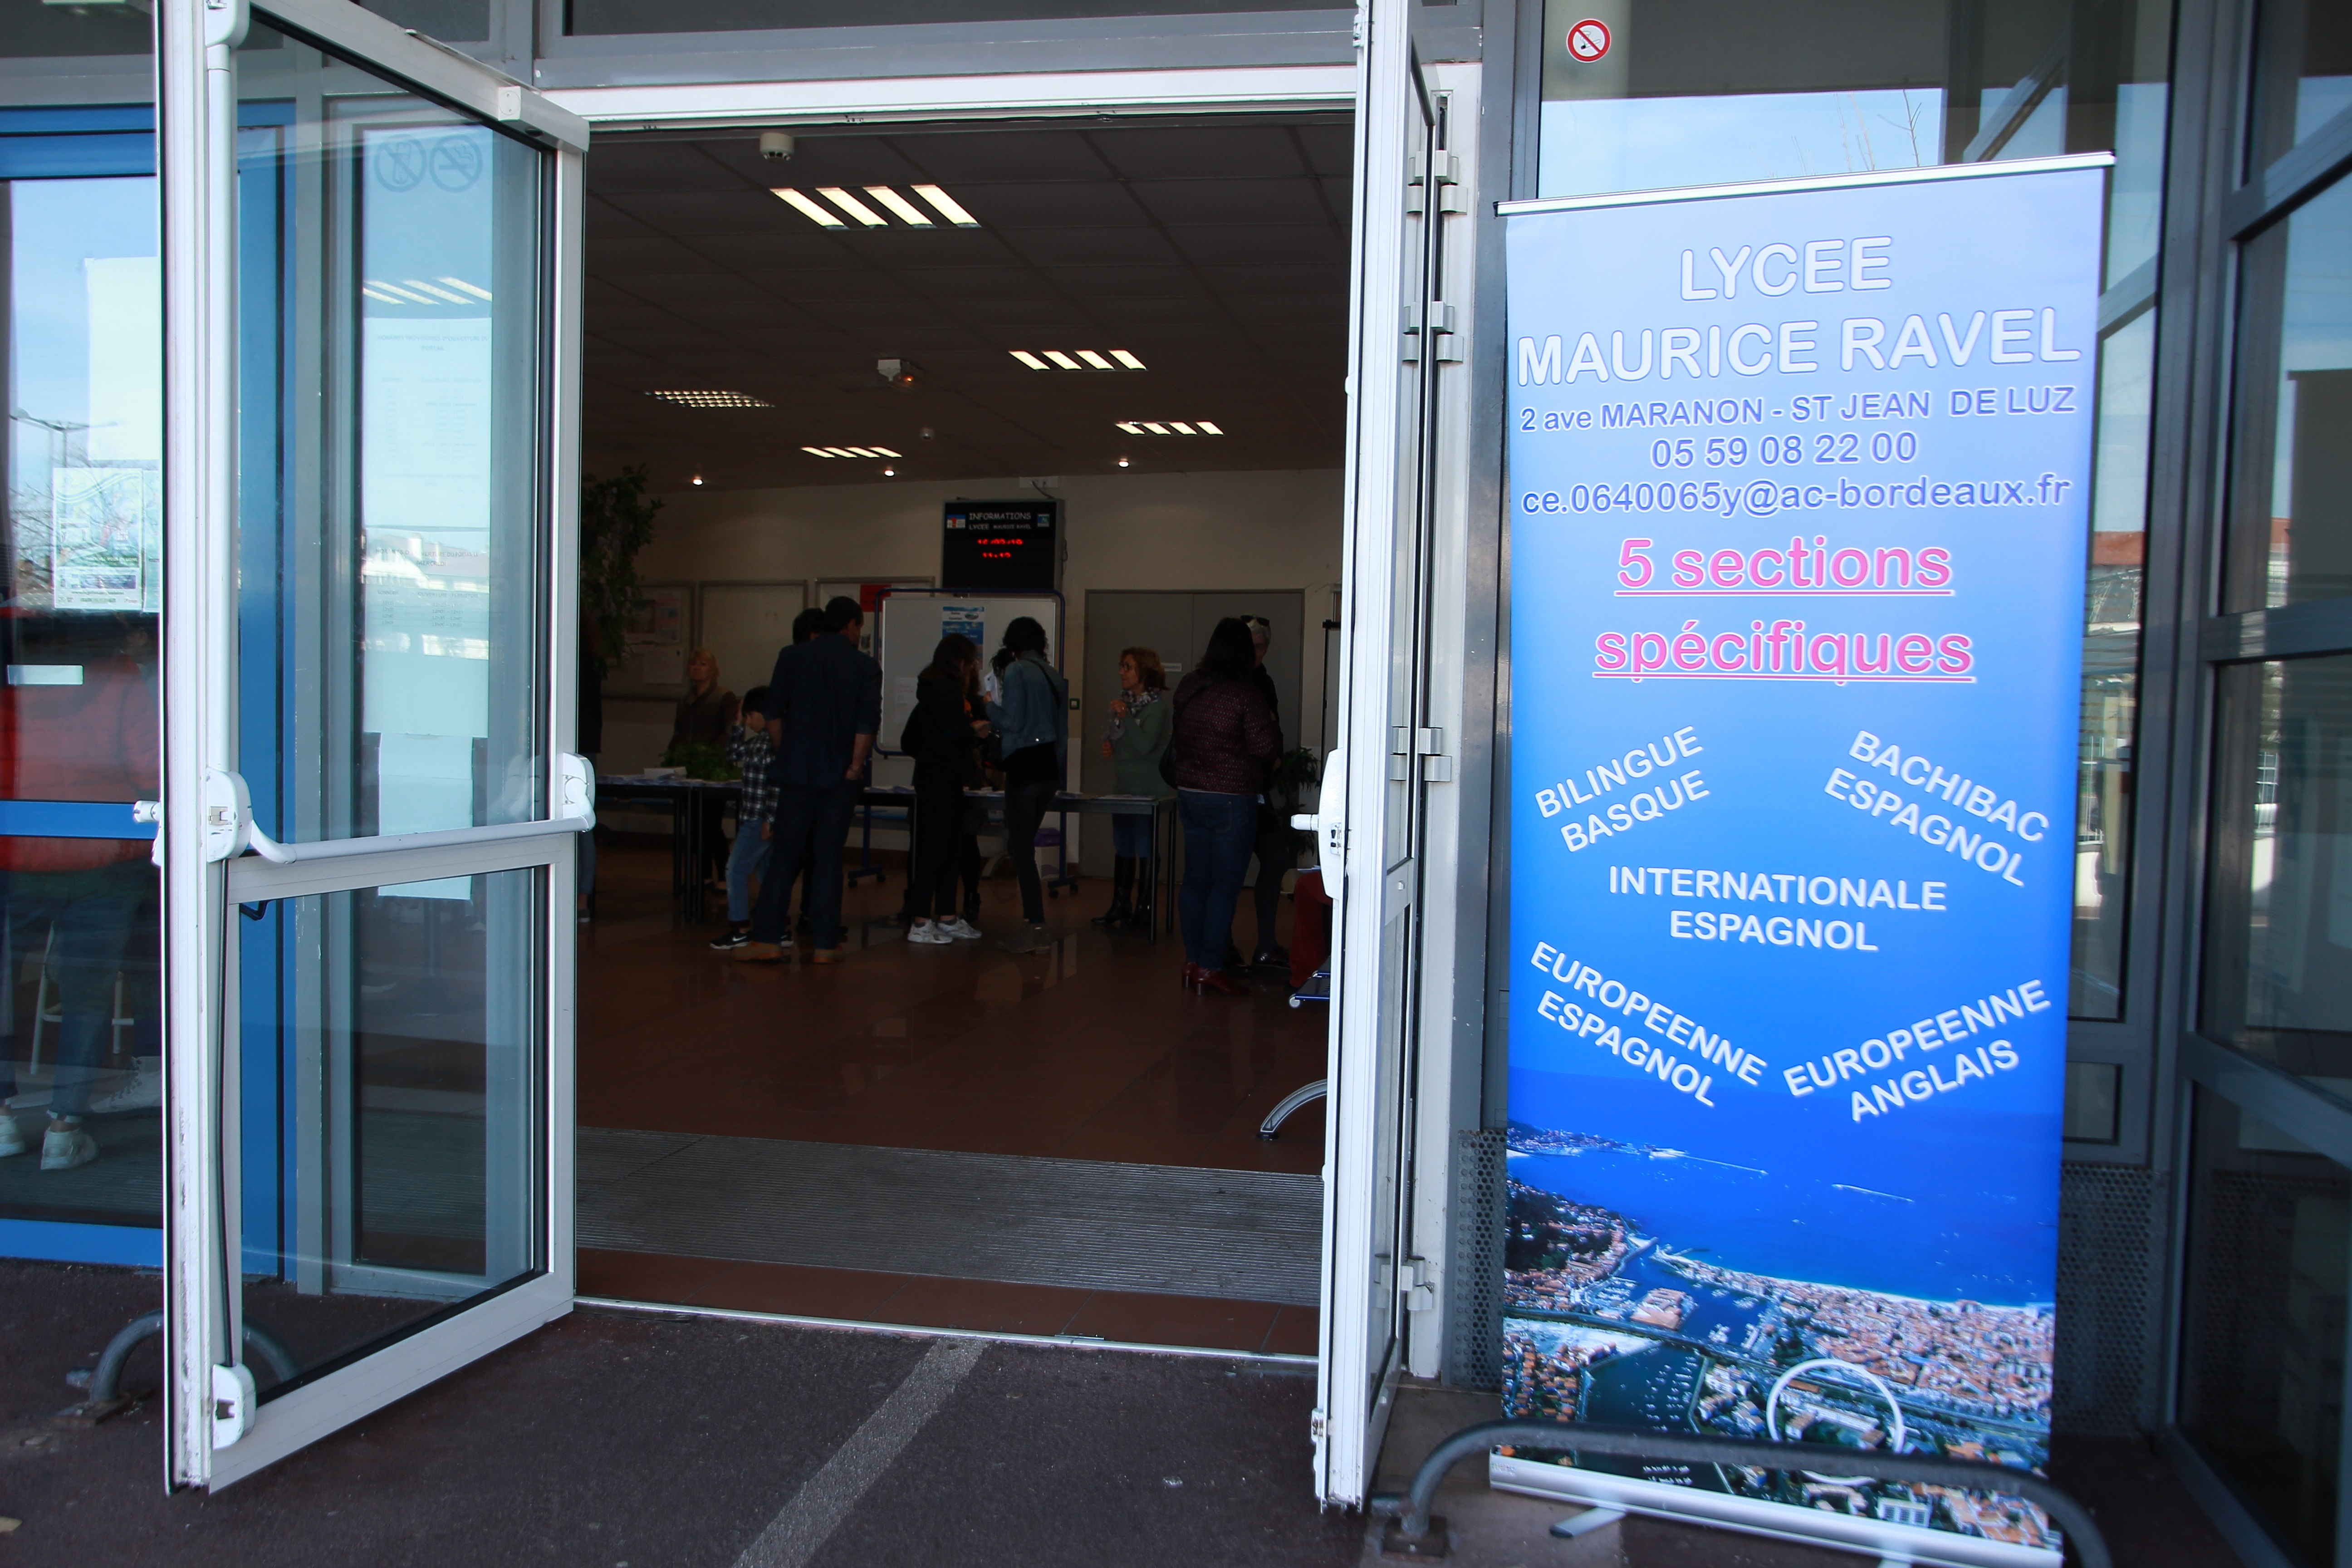 Le Lycee Cite Scolaire Maurice Ravel